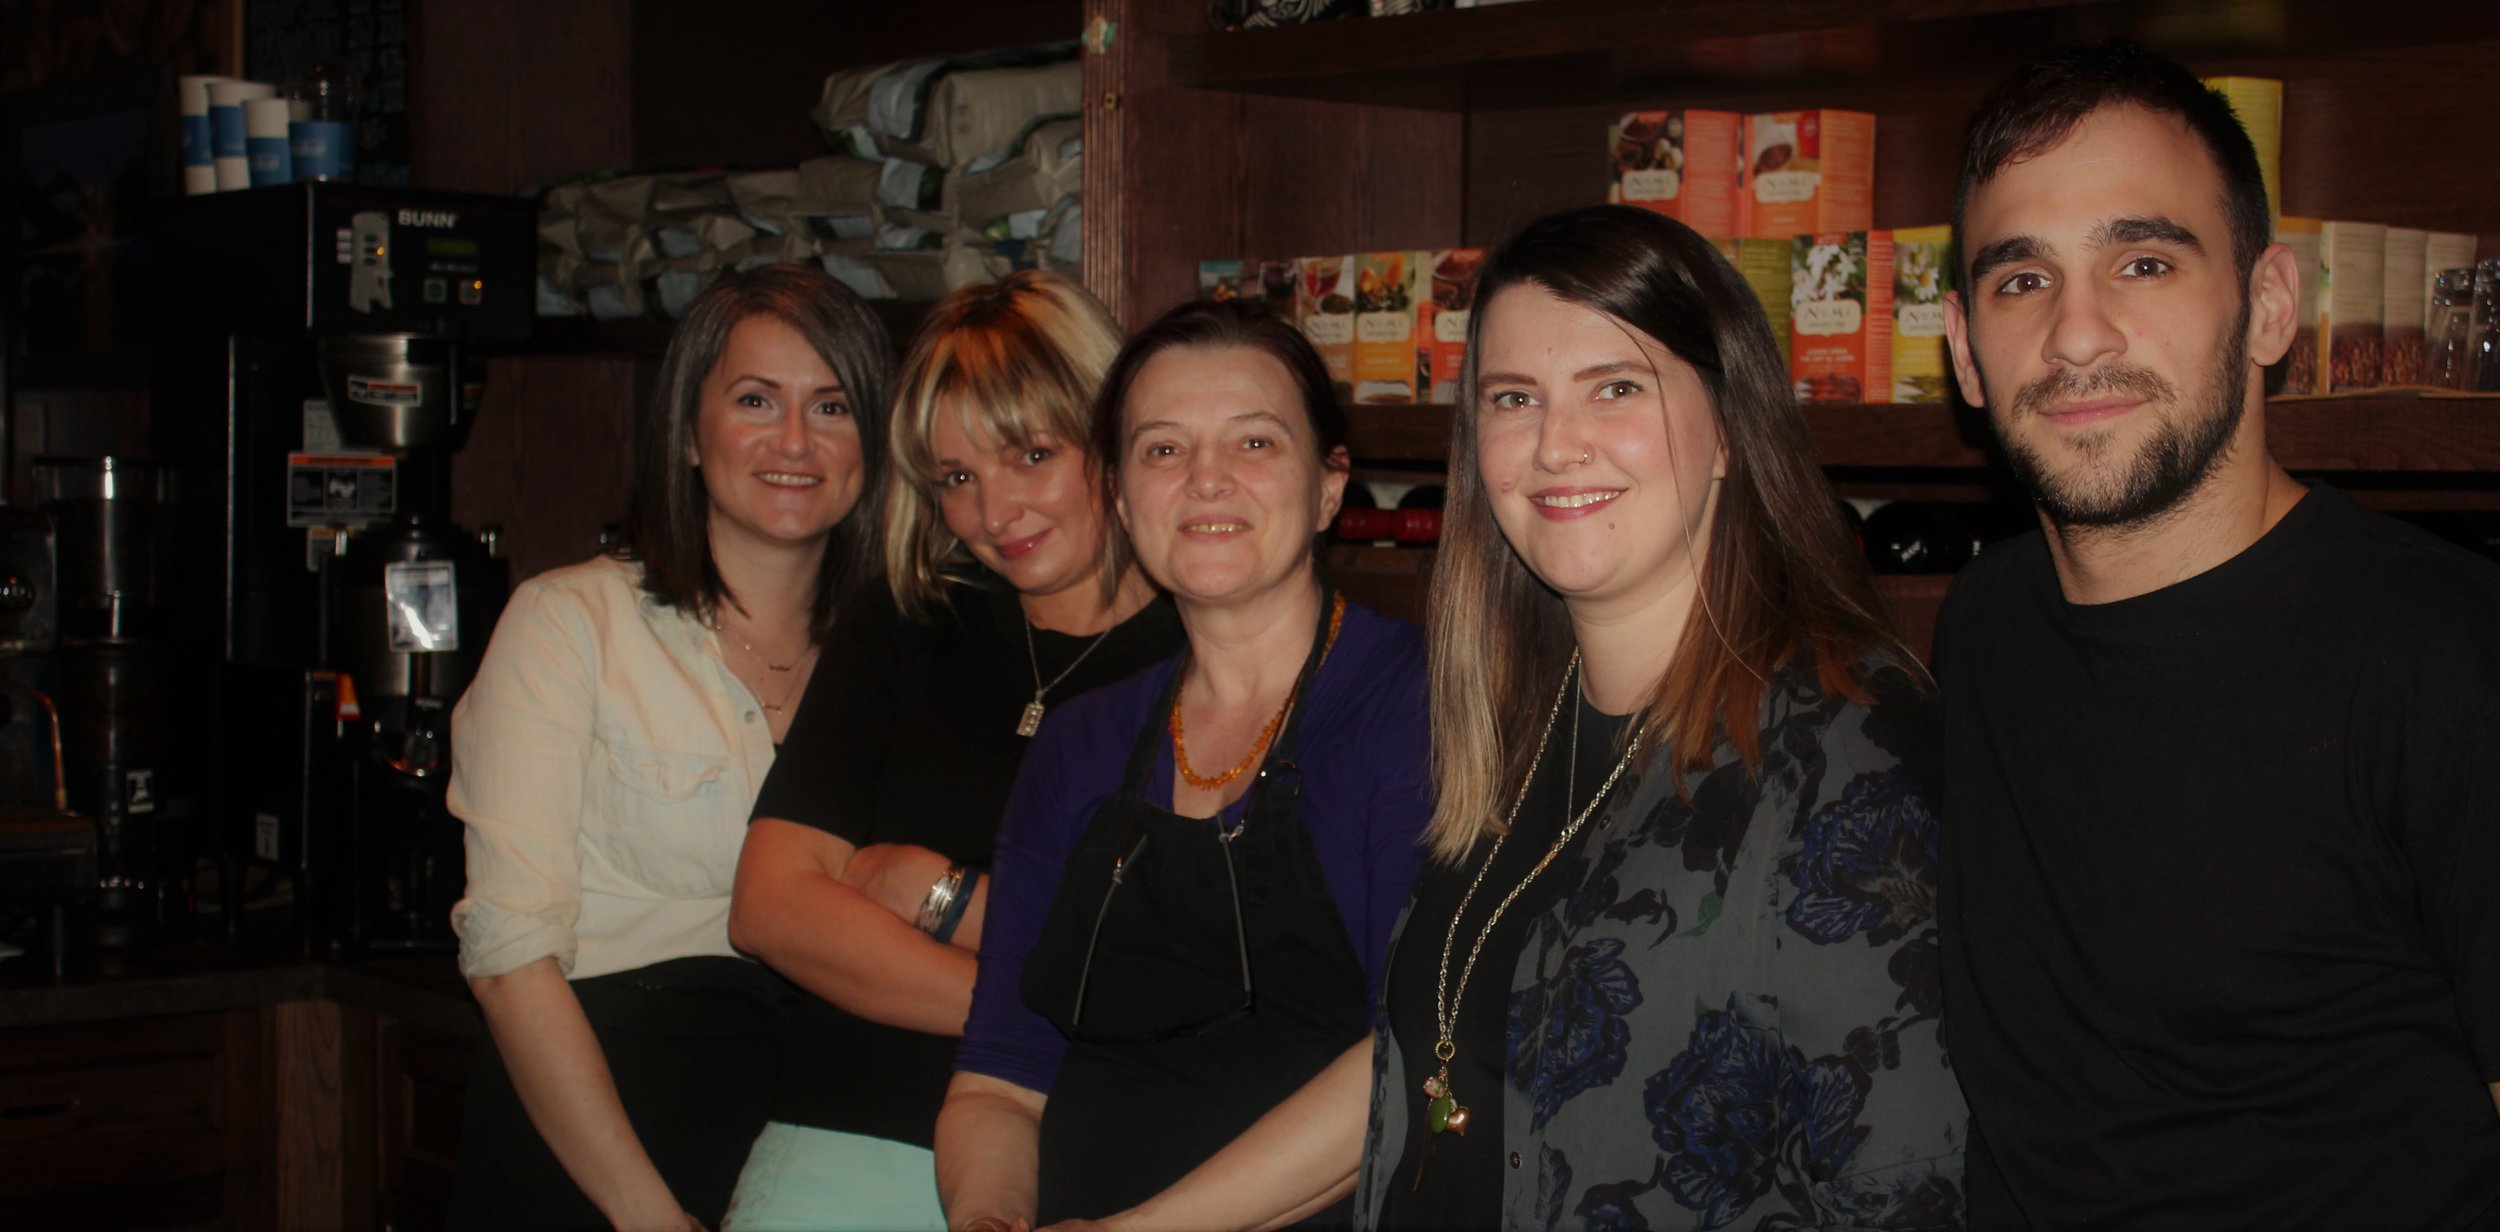 Lozena Dukic (middle) with her staff on the night of the show. She has owned and operated the local community cafe, Coffee Cats, for 17 years.